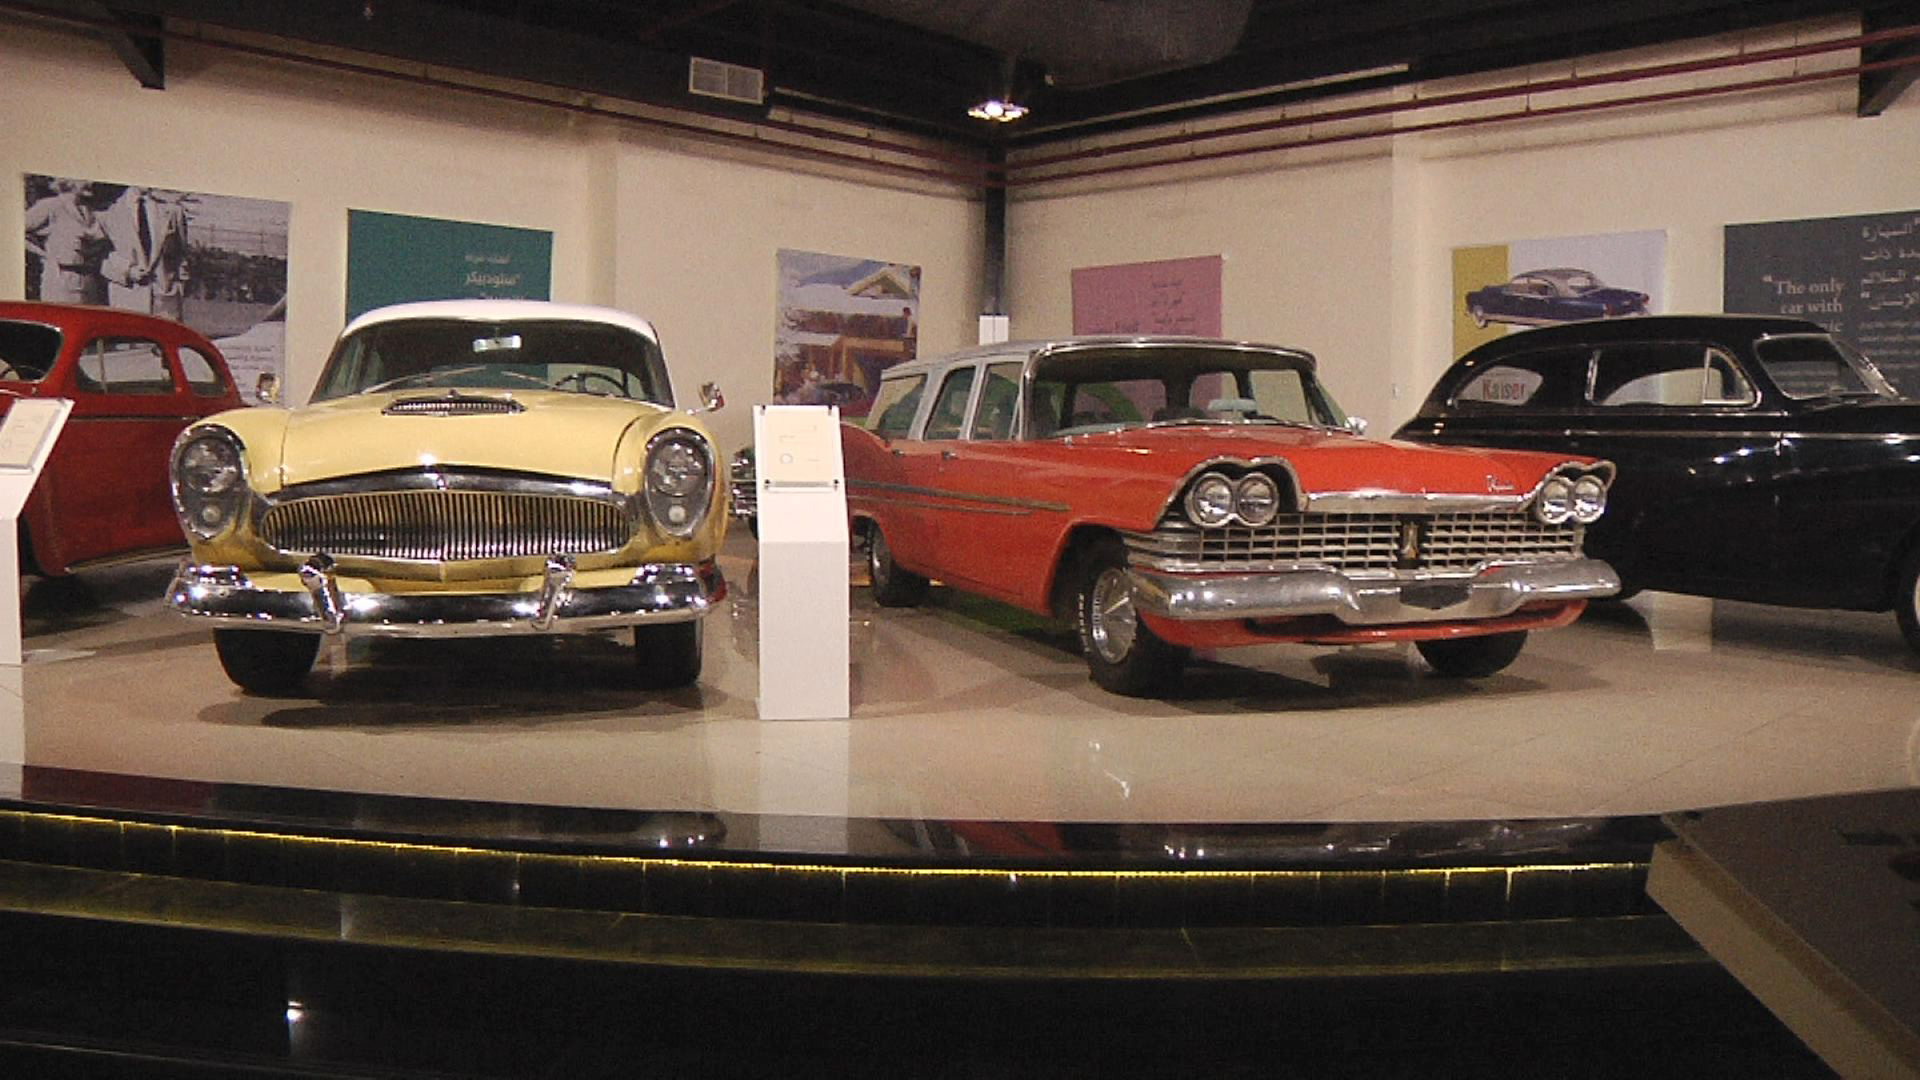 Video - Sharjah Classic Car Museum